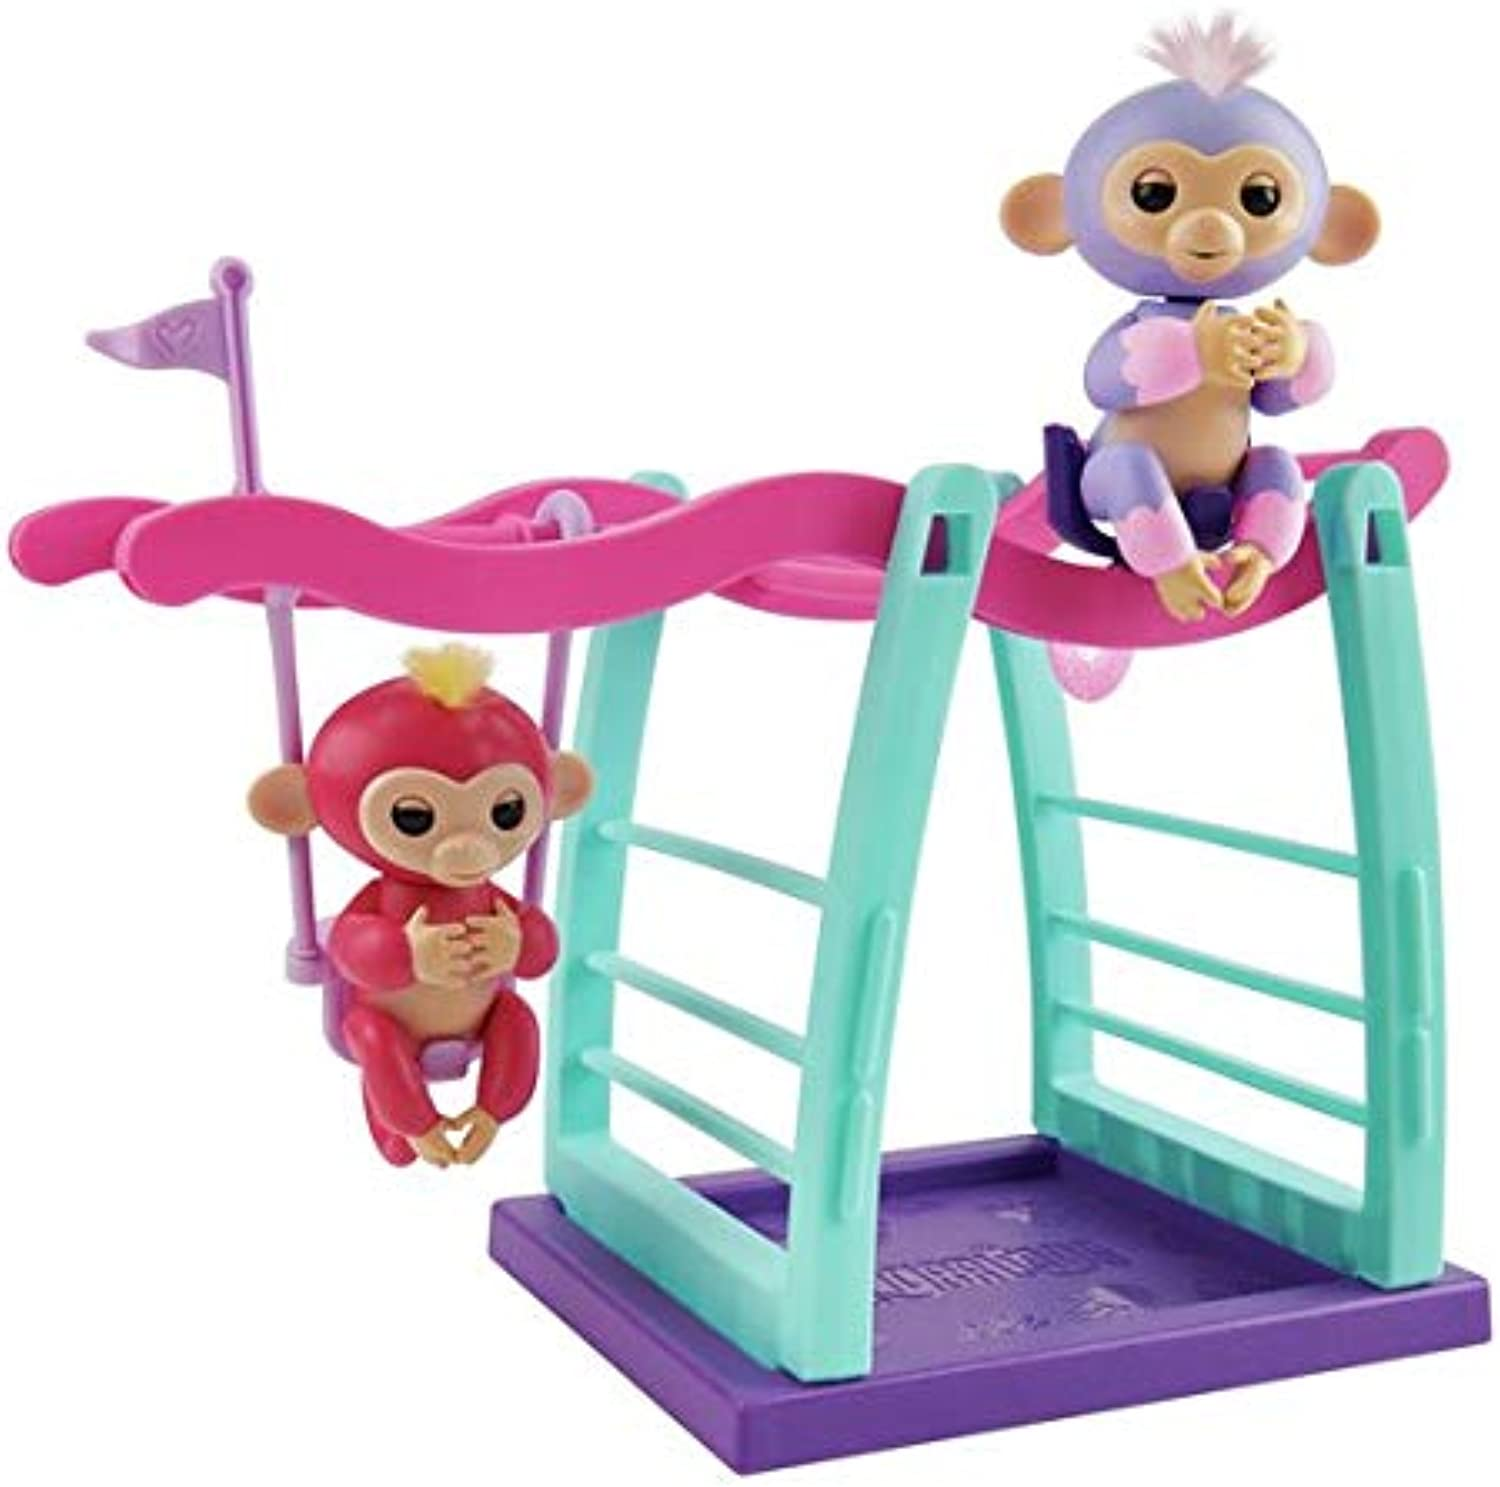 WowWee Fingerlings Monkey Playset with Two Monkey's